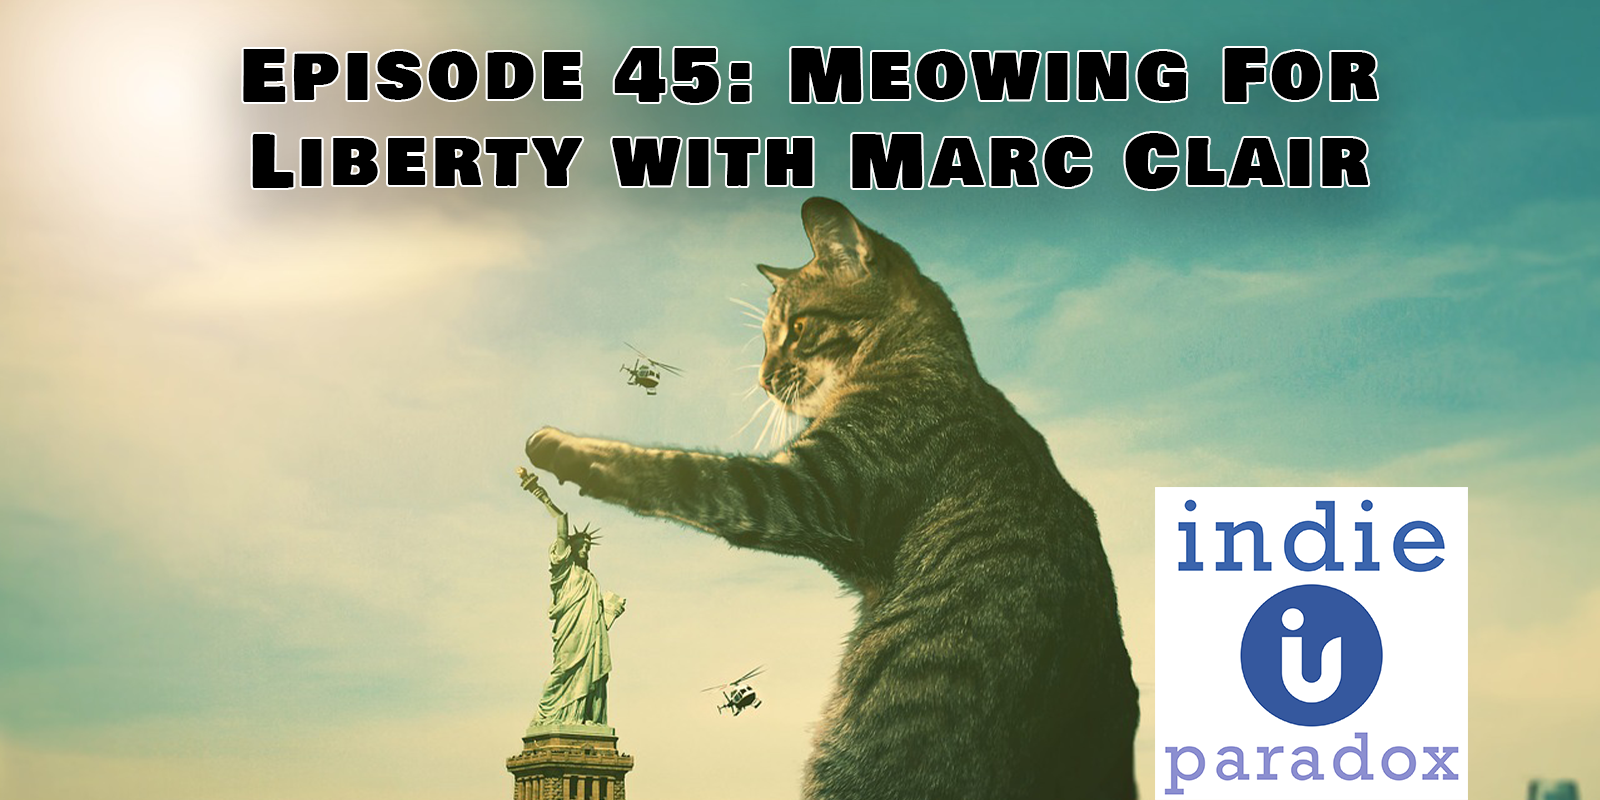 meowing-for-liberty